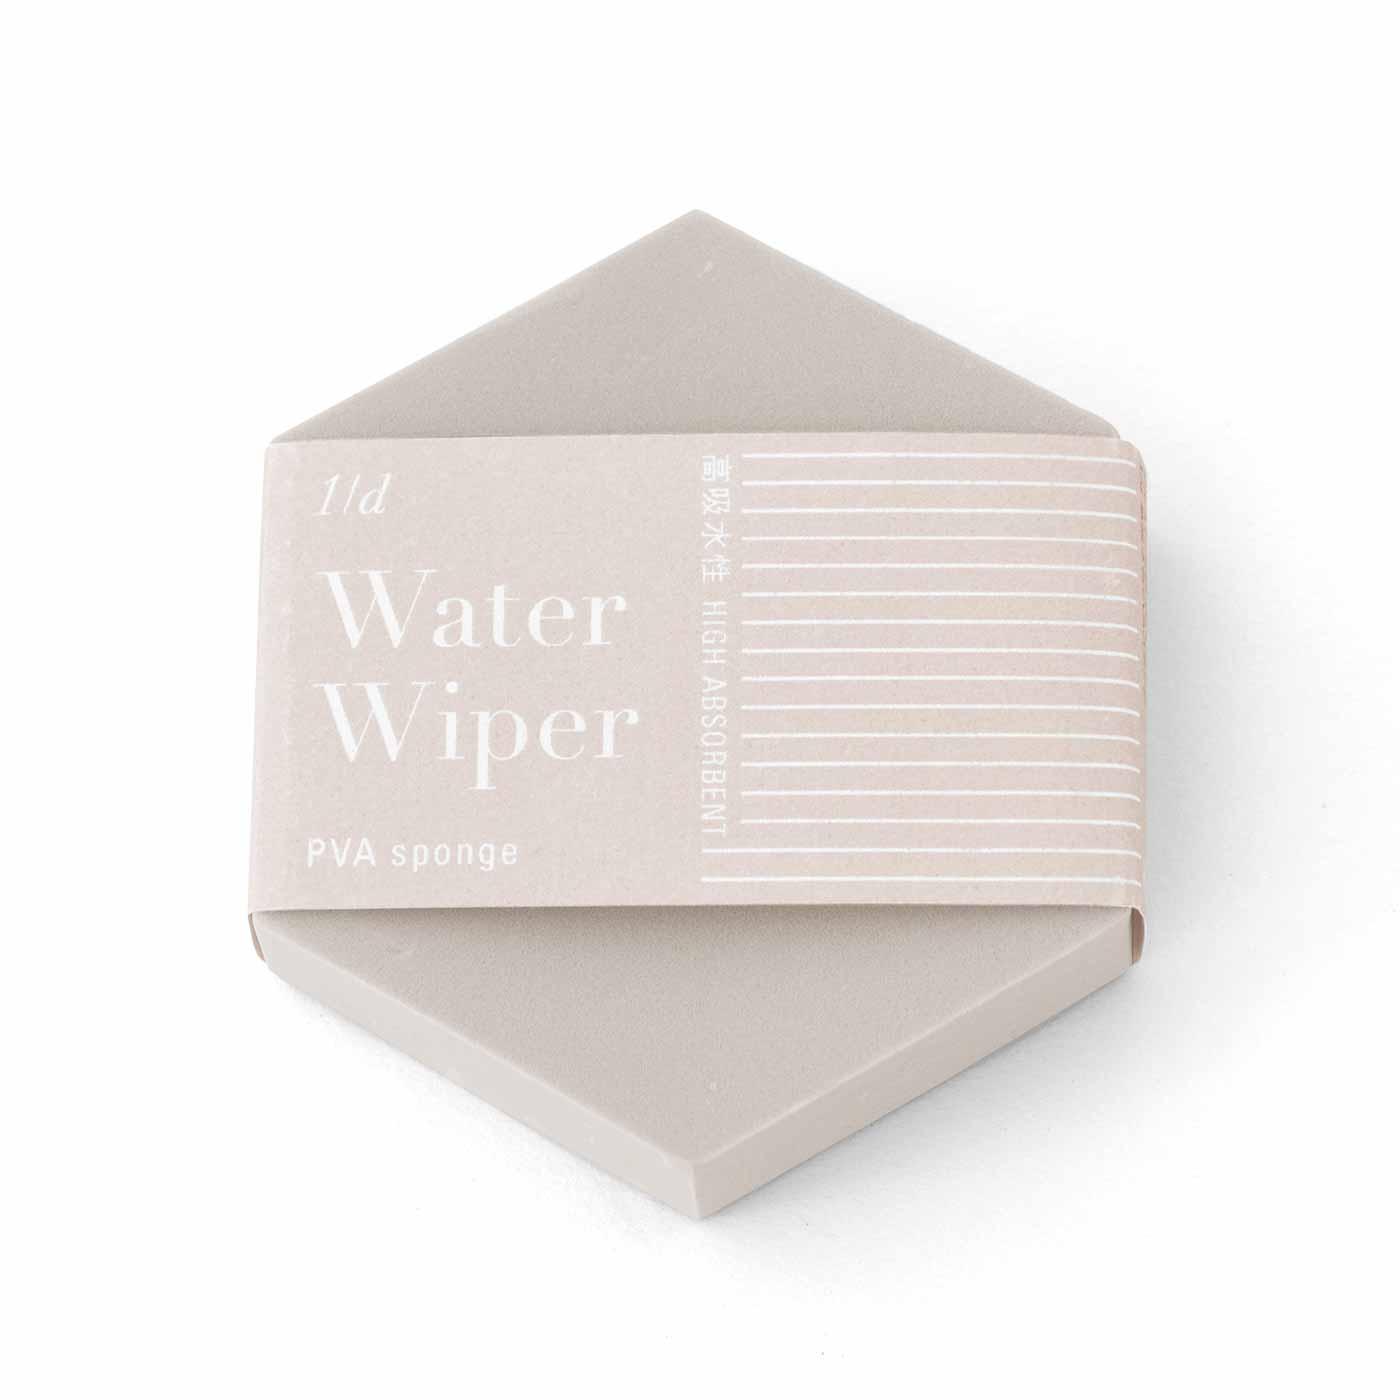 1/d for Water Wiper